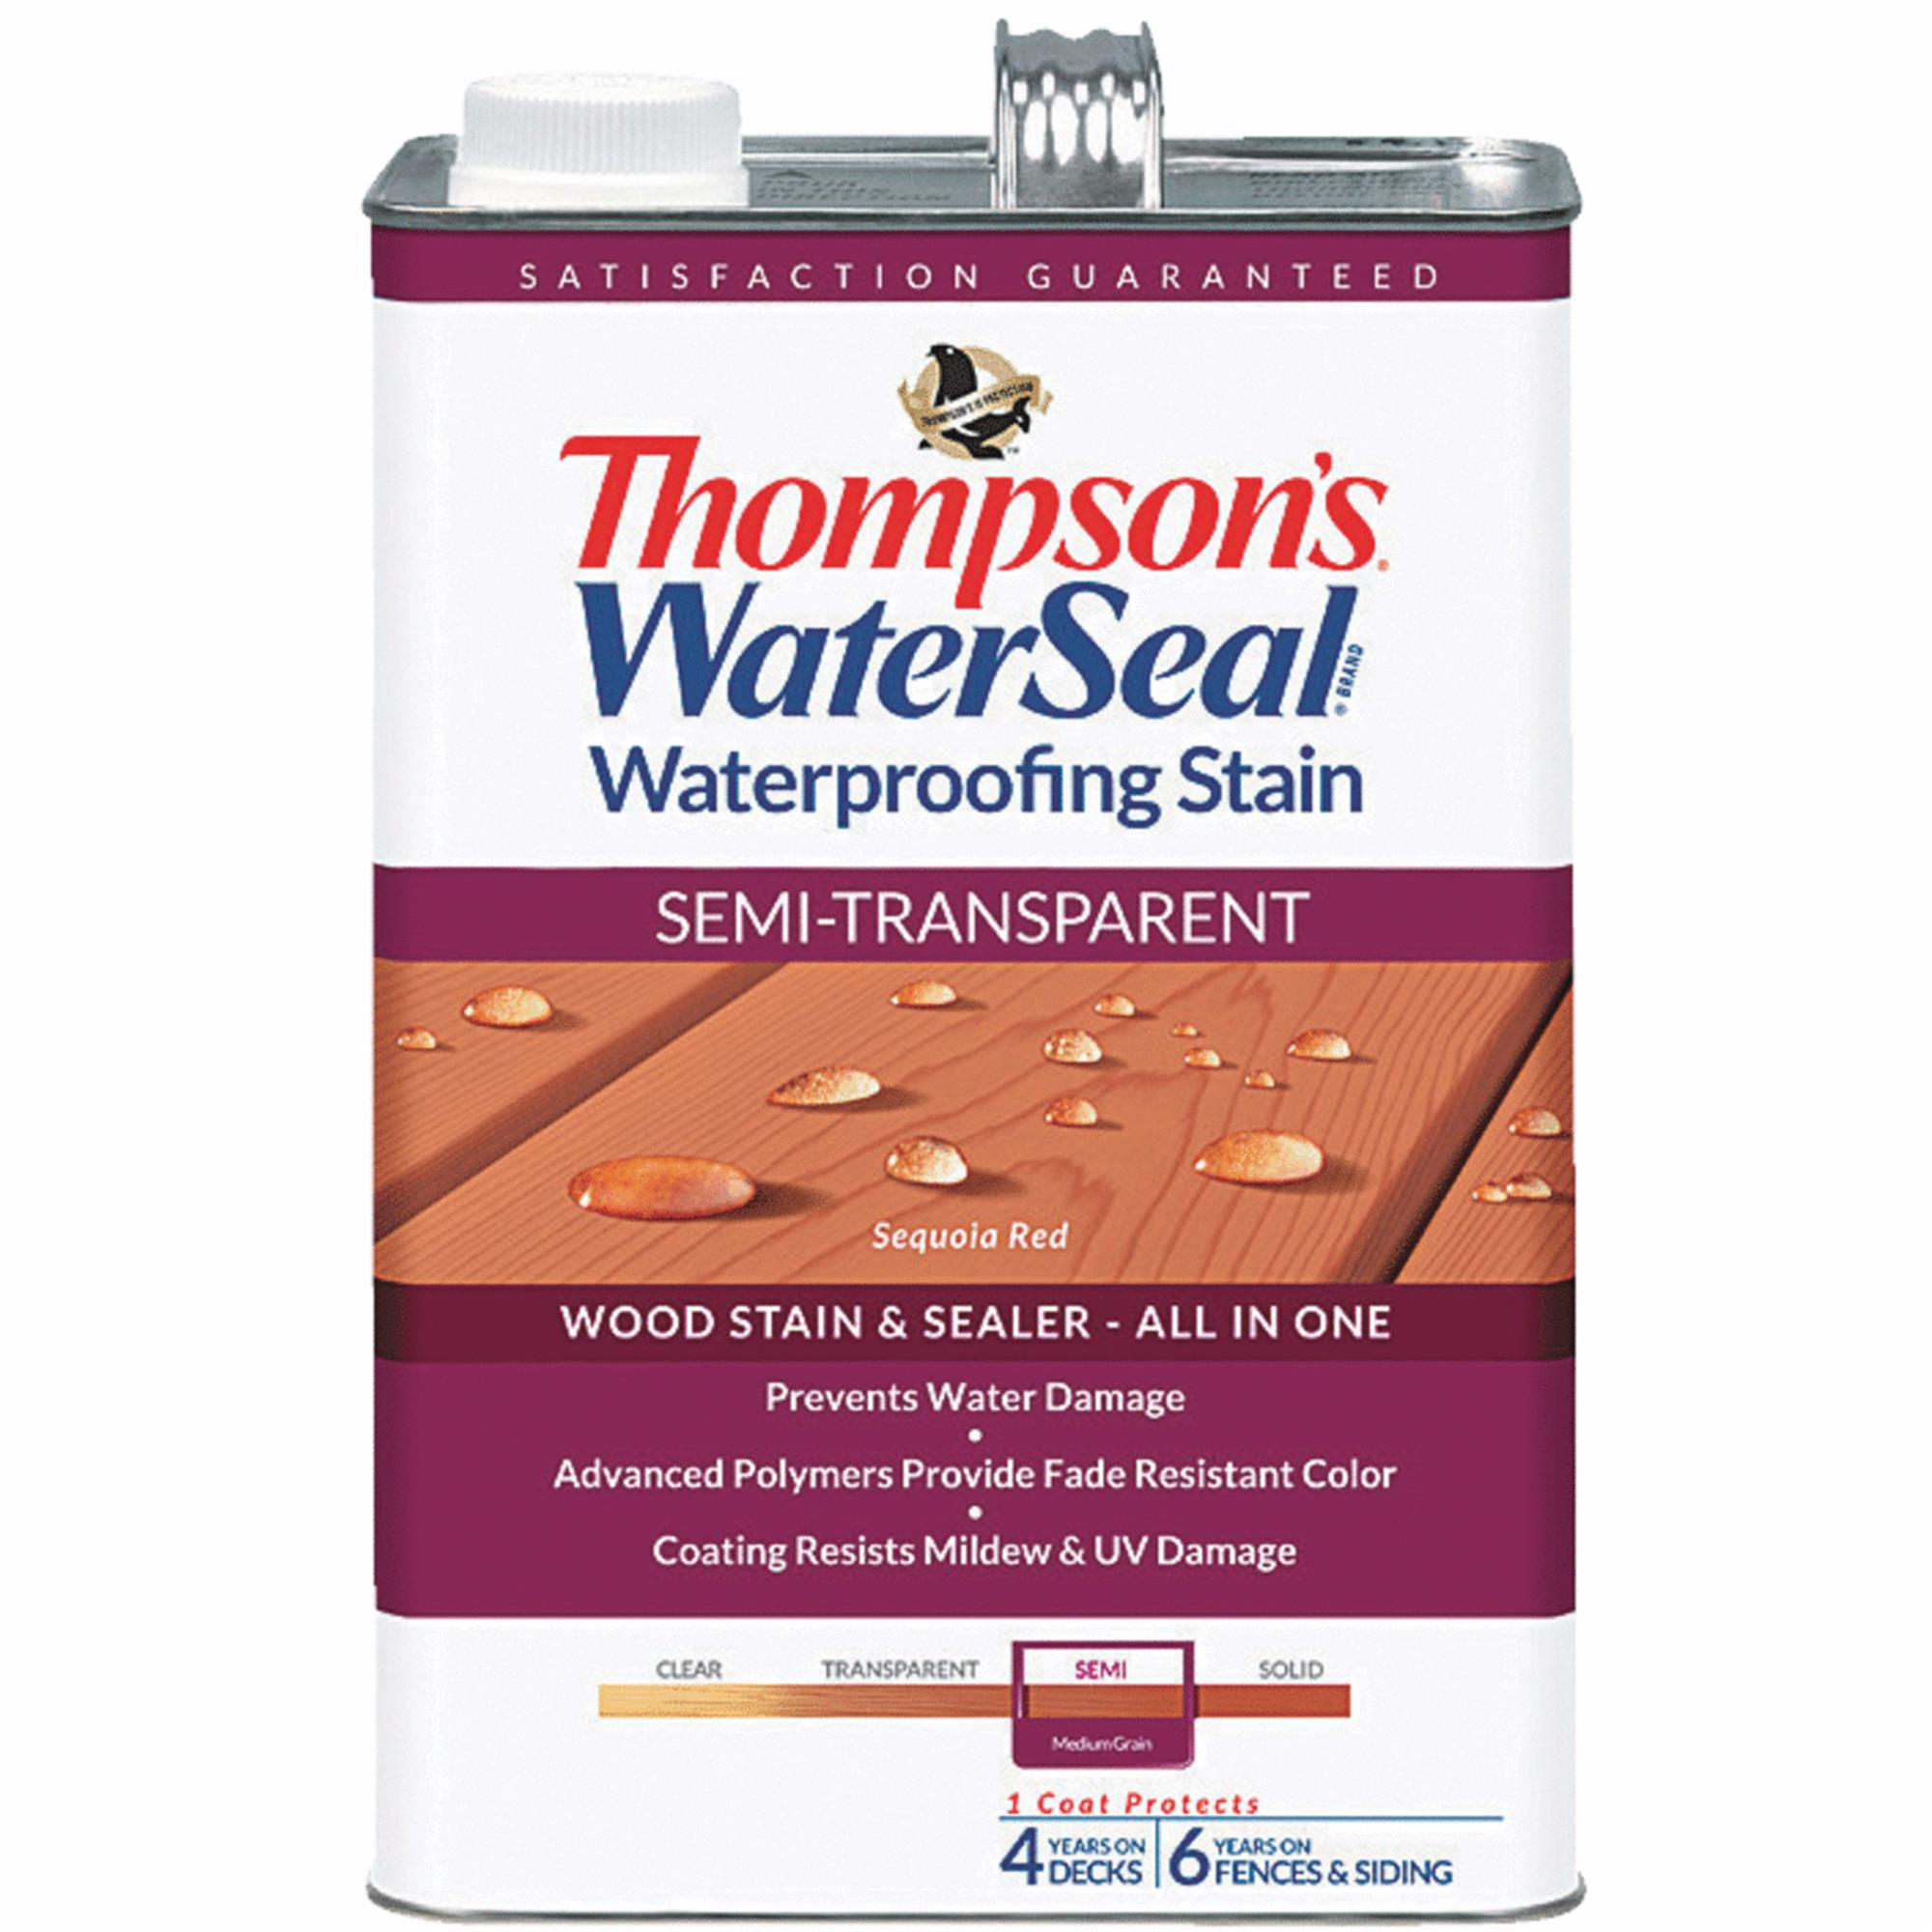 Thompsons WaterSeal Semi-Transparent Waterproofing Stain